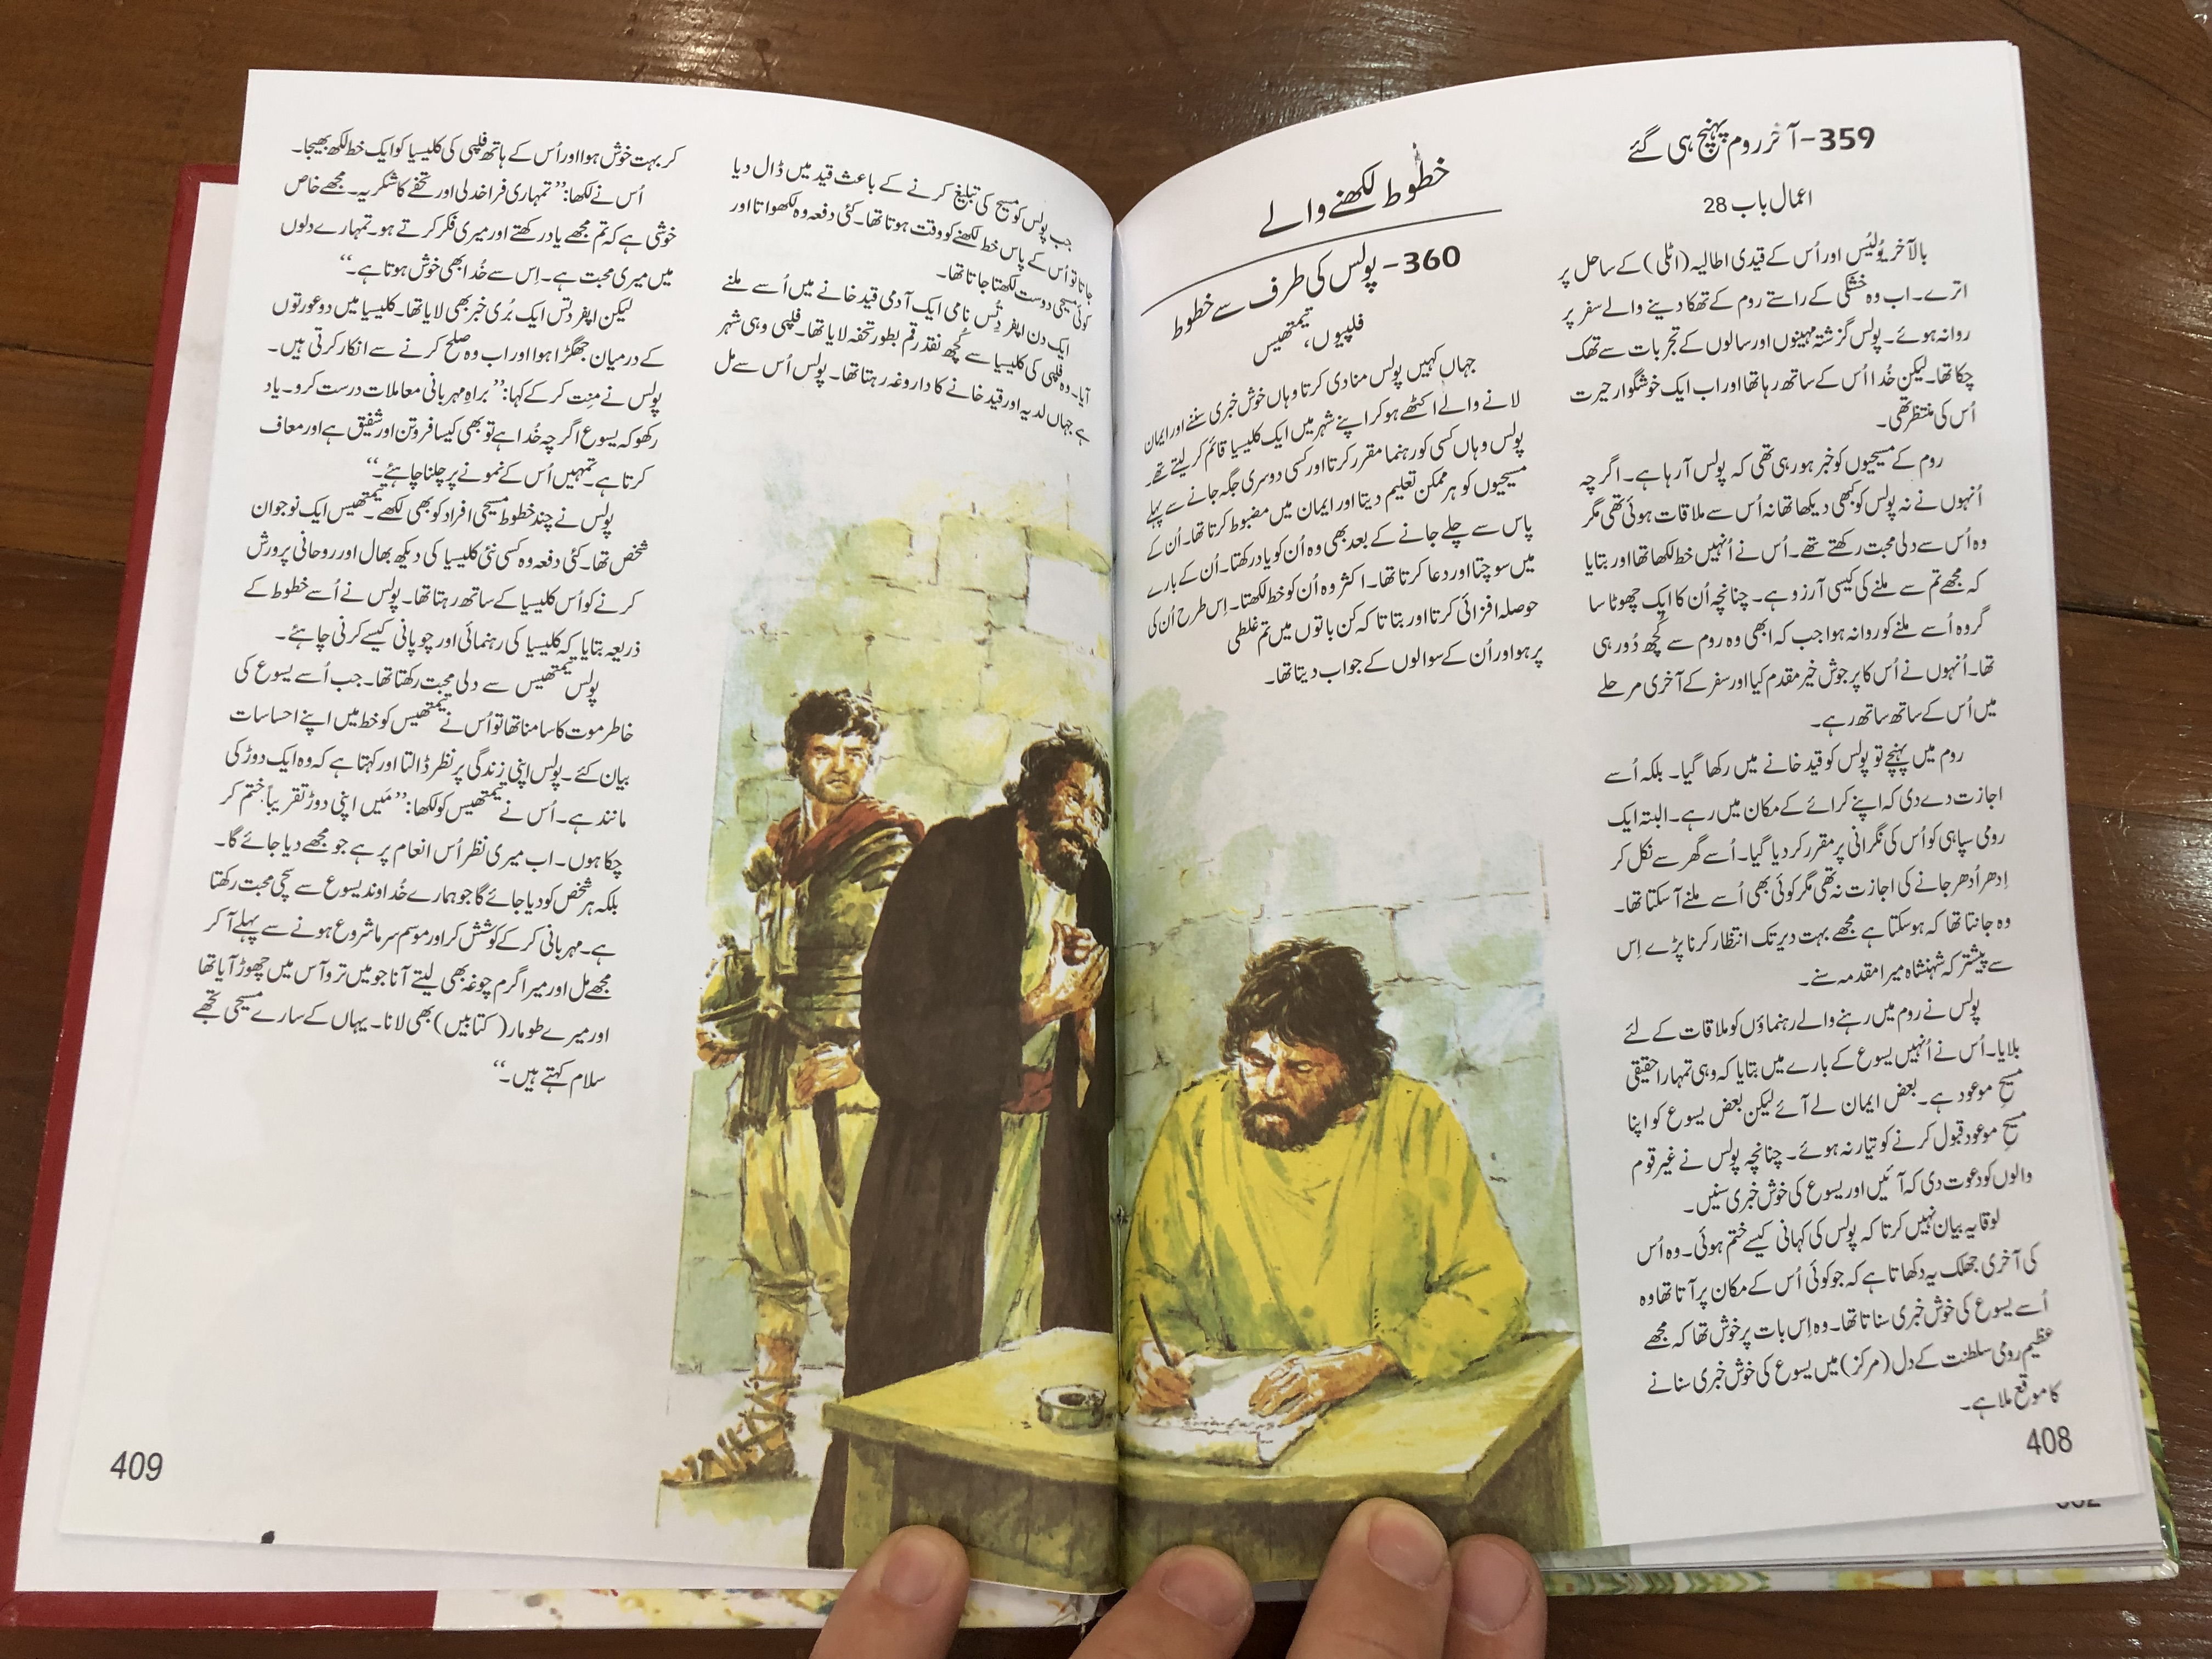 the-lion-children-s-bible-in-365-stories-by-mary-batchelor-urdu-edition-pakistan-bible-society-2018-hardcover-16-.jpg